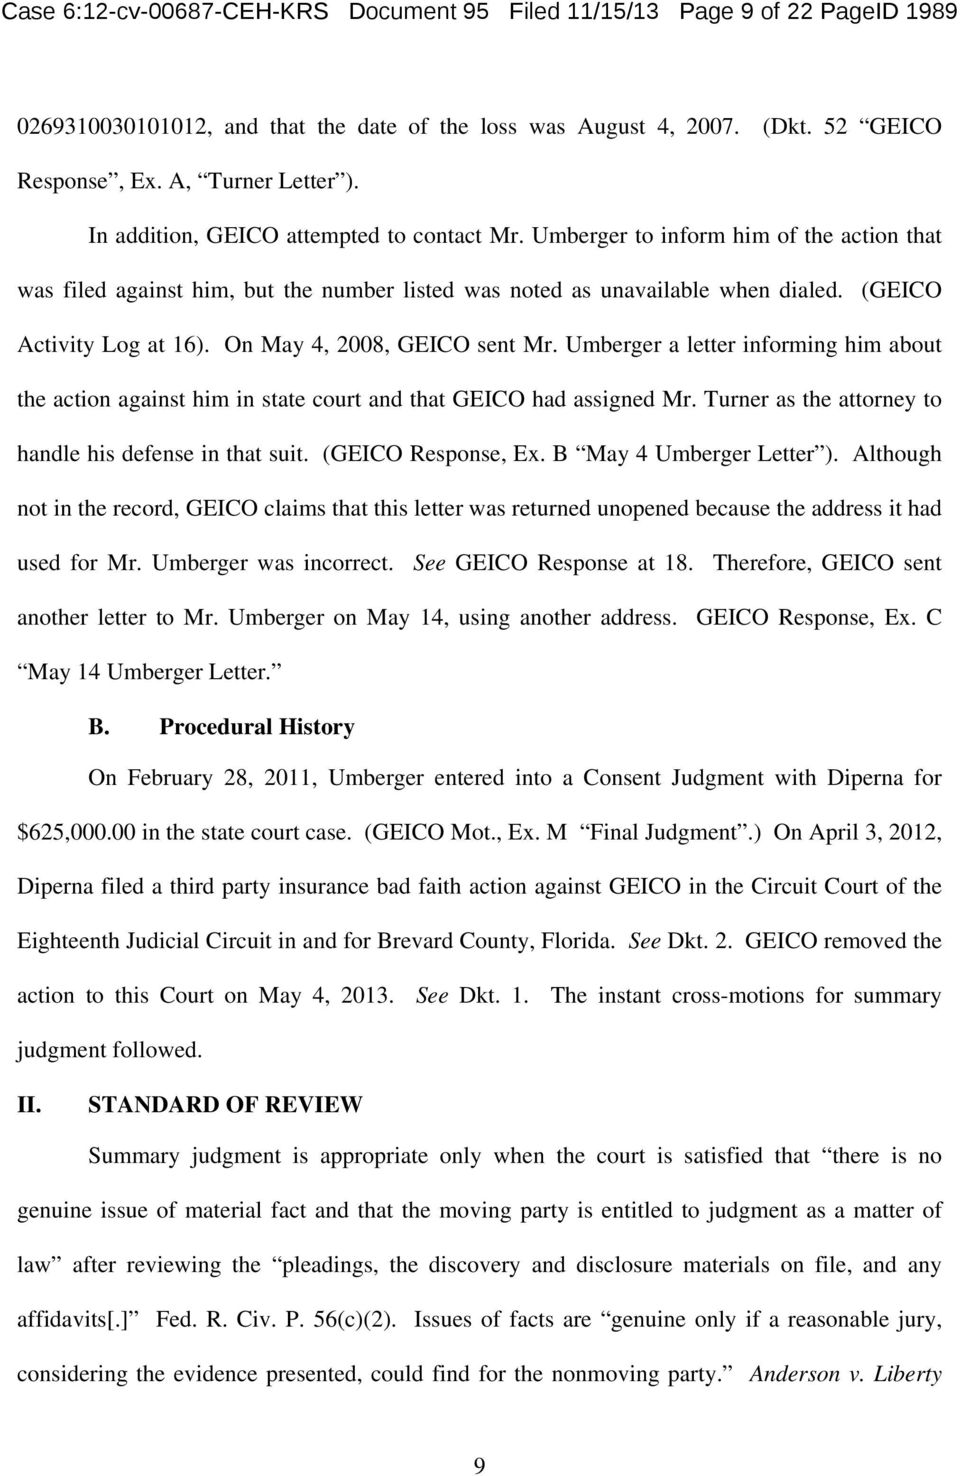 On May 4, 2008, GEICO sent Mr. Umberger a letter informing him about the action against him in state court and that GEICO had assigned Mr. Turner as the attorney to handle his defense in that suit.